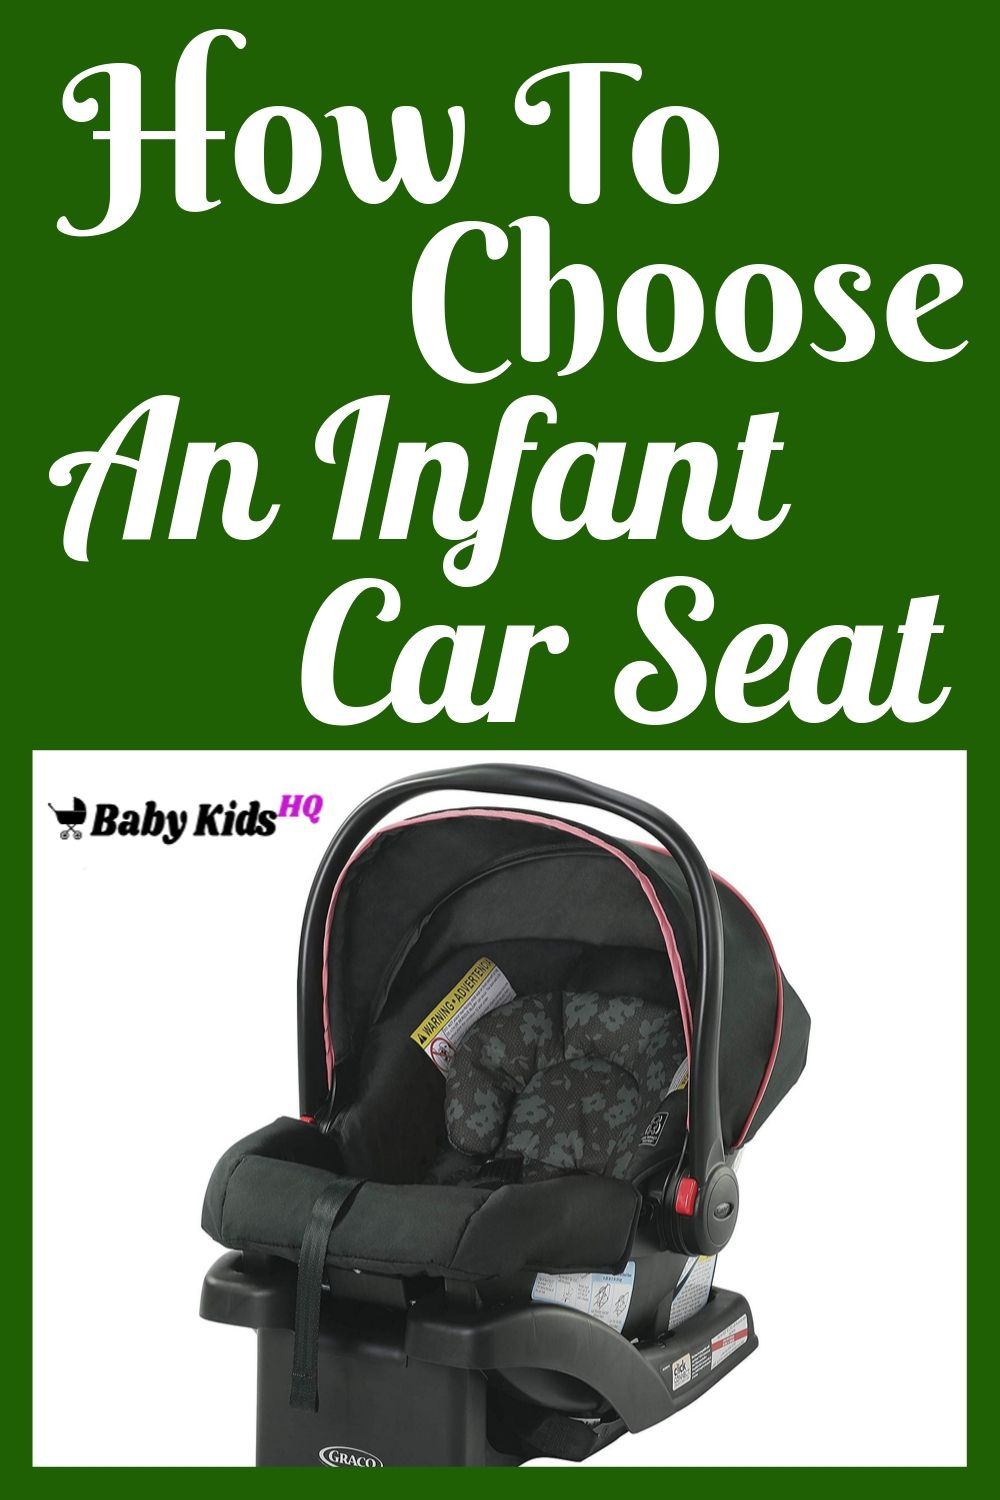 How To Choose A Infant Car Seat